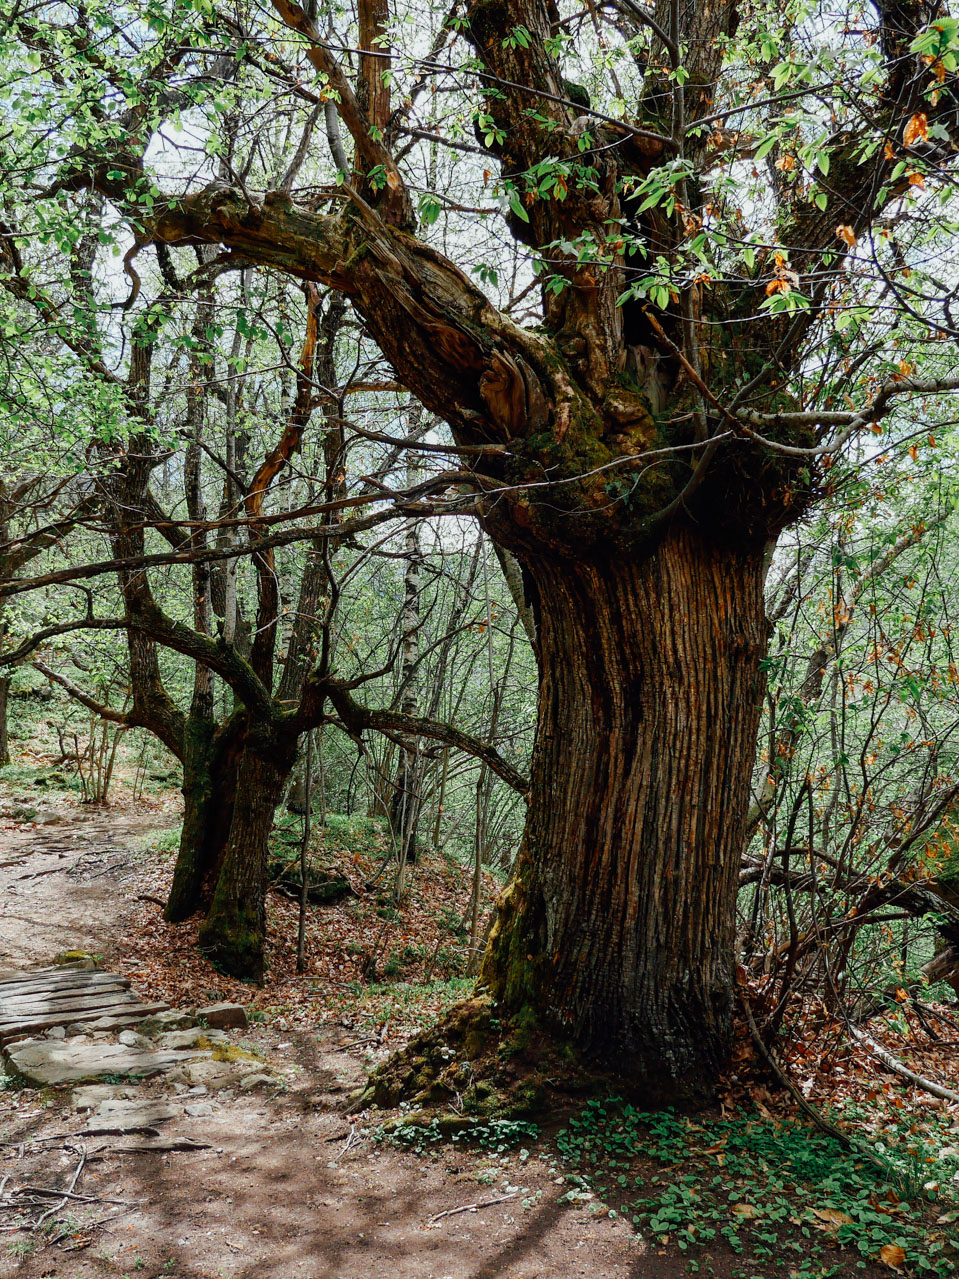 Details of ancient tree.